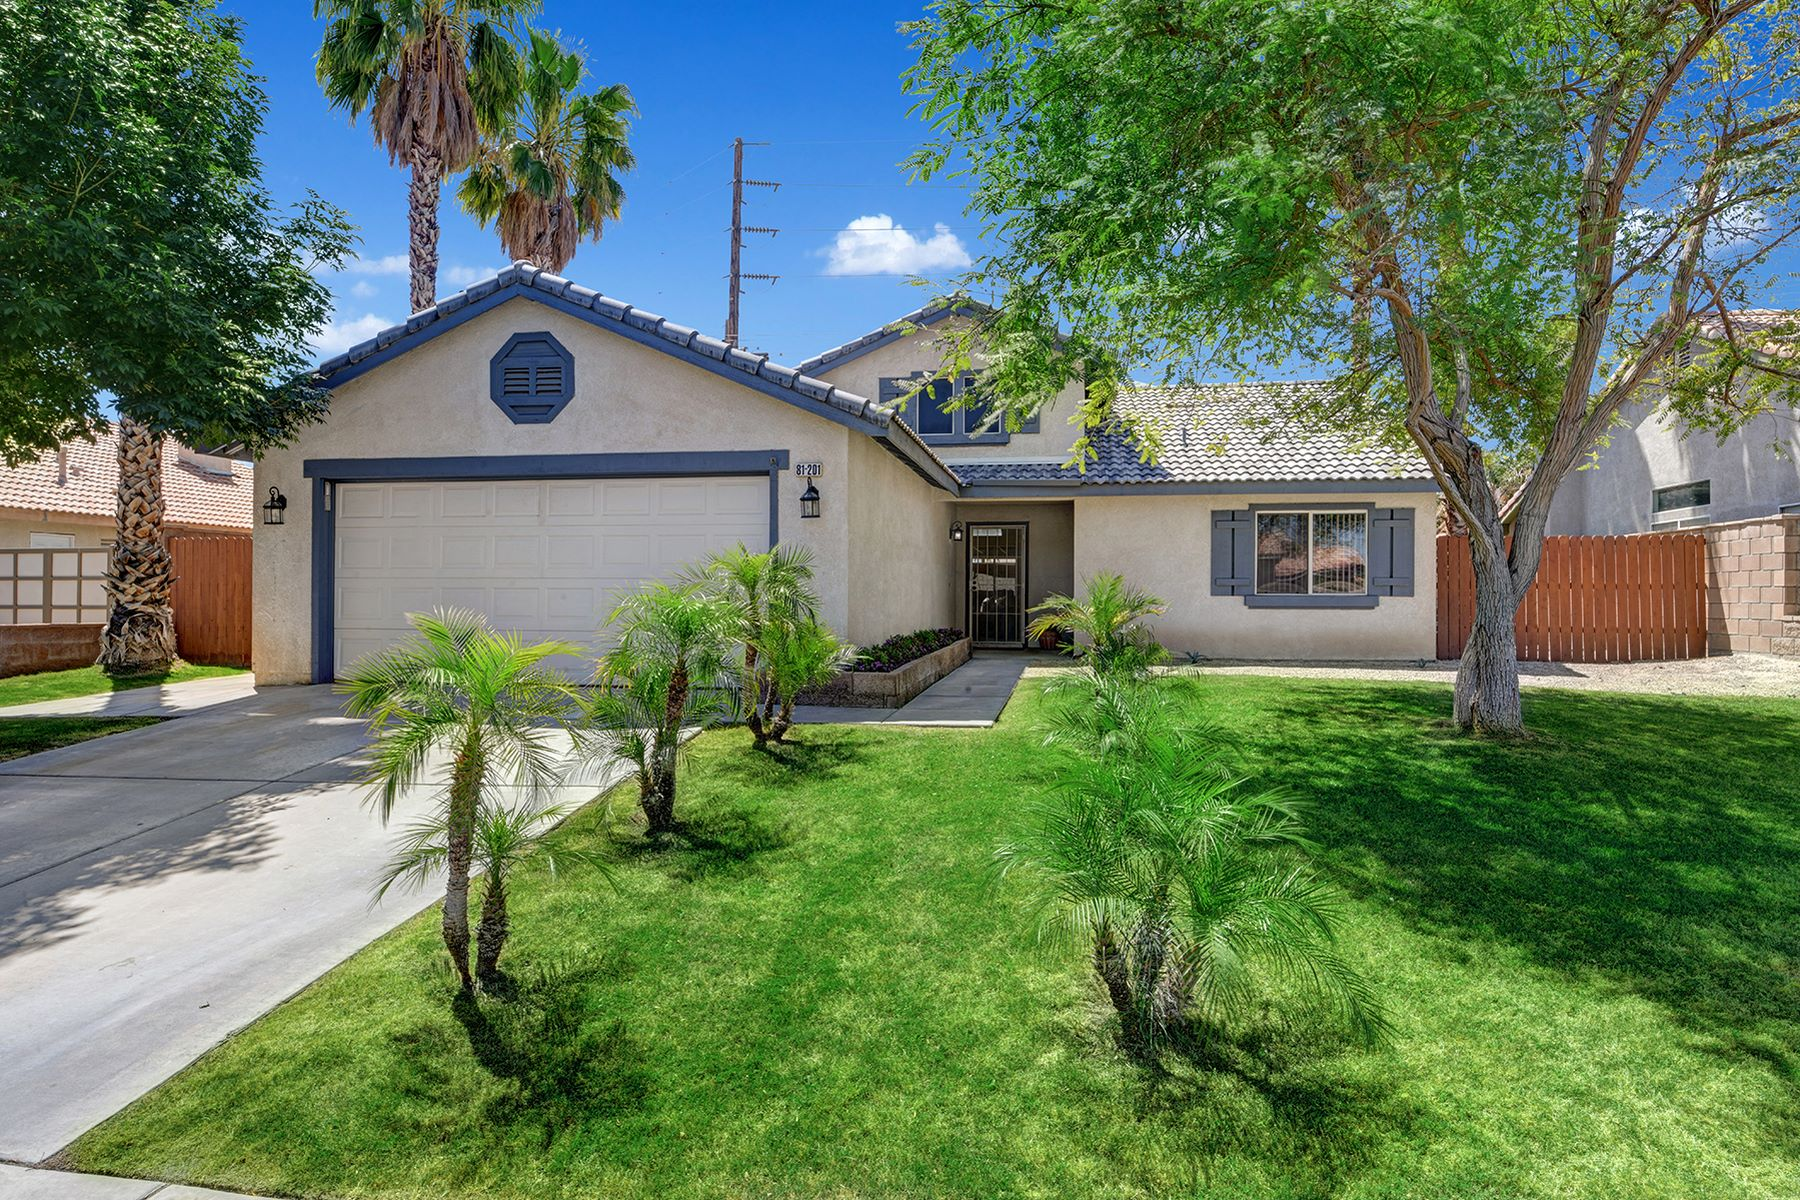 Single Family Homes for Active at 81201 Coco Palm Drive Indio, California 92201 United States